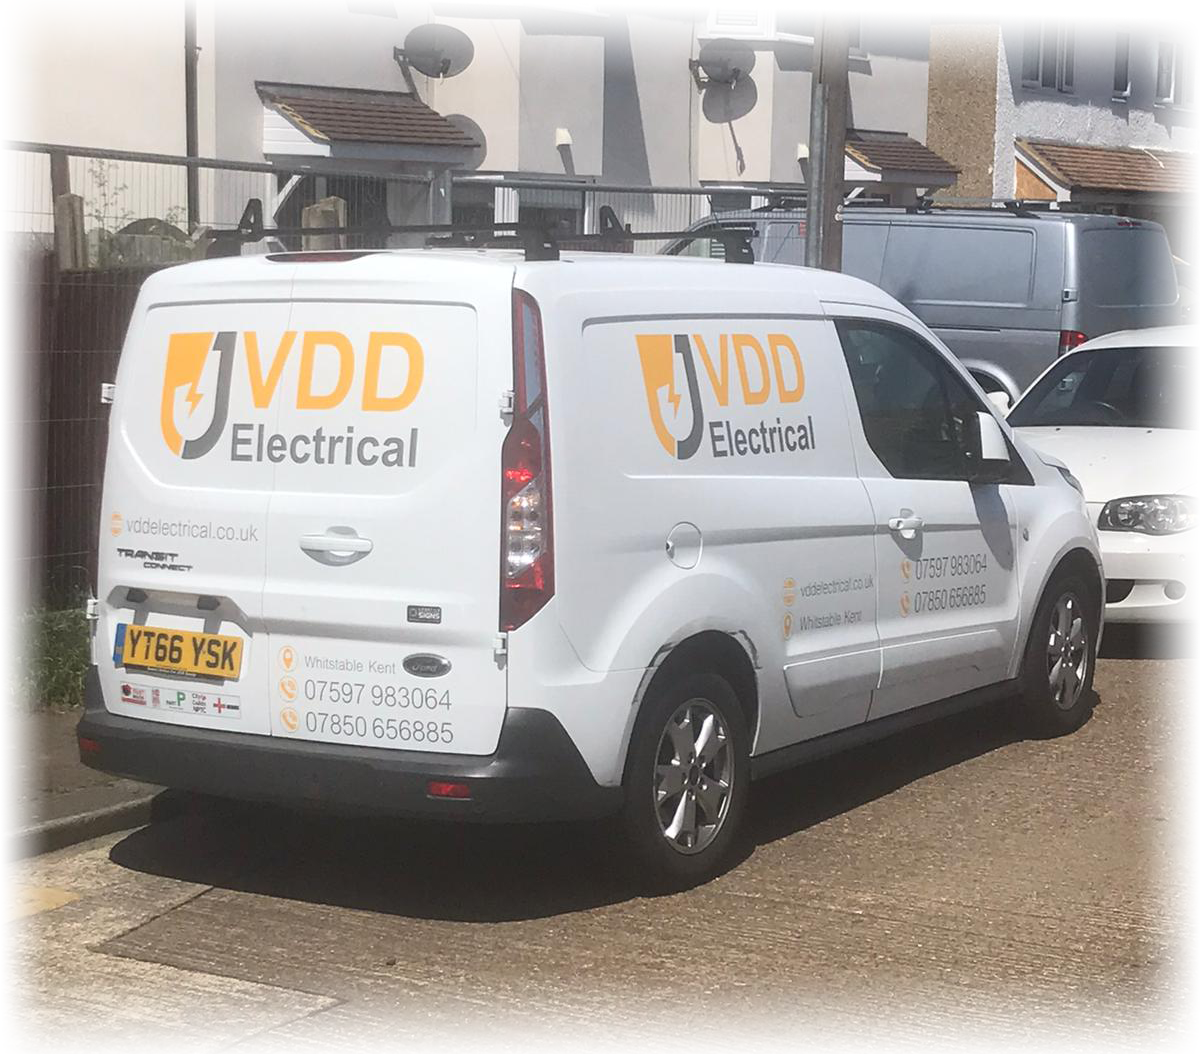 Rich results on Google's SERP when searching for 'Kent Electrician' and 'VDD Electrical'